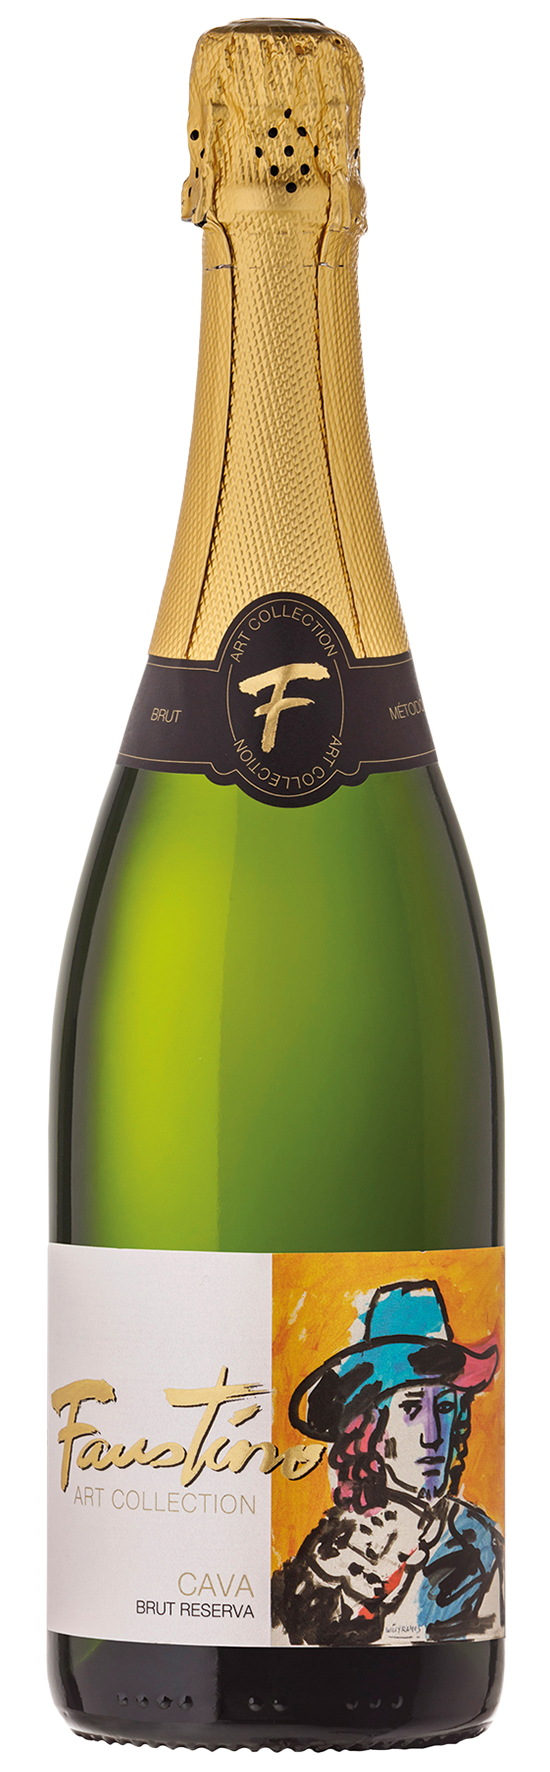 Faustino_Art_Collection_Cava_Brut_Reserva